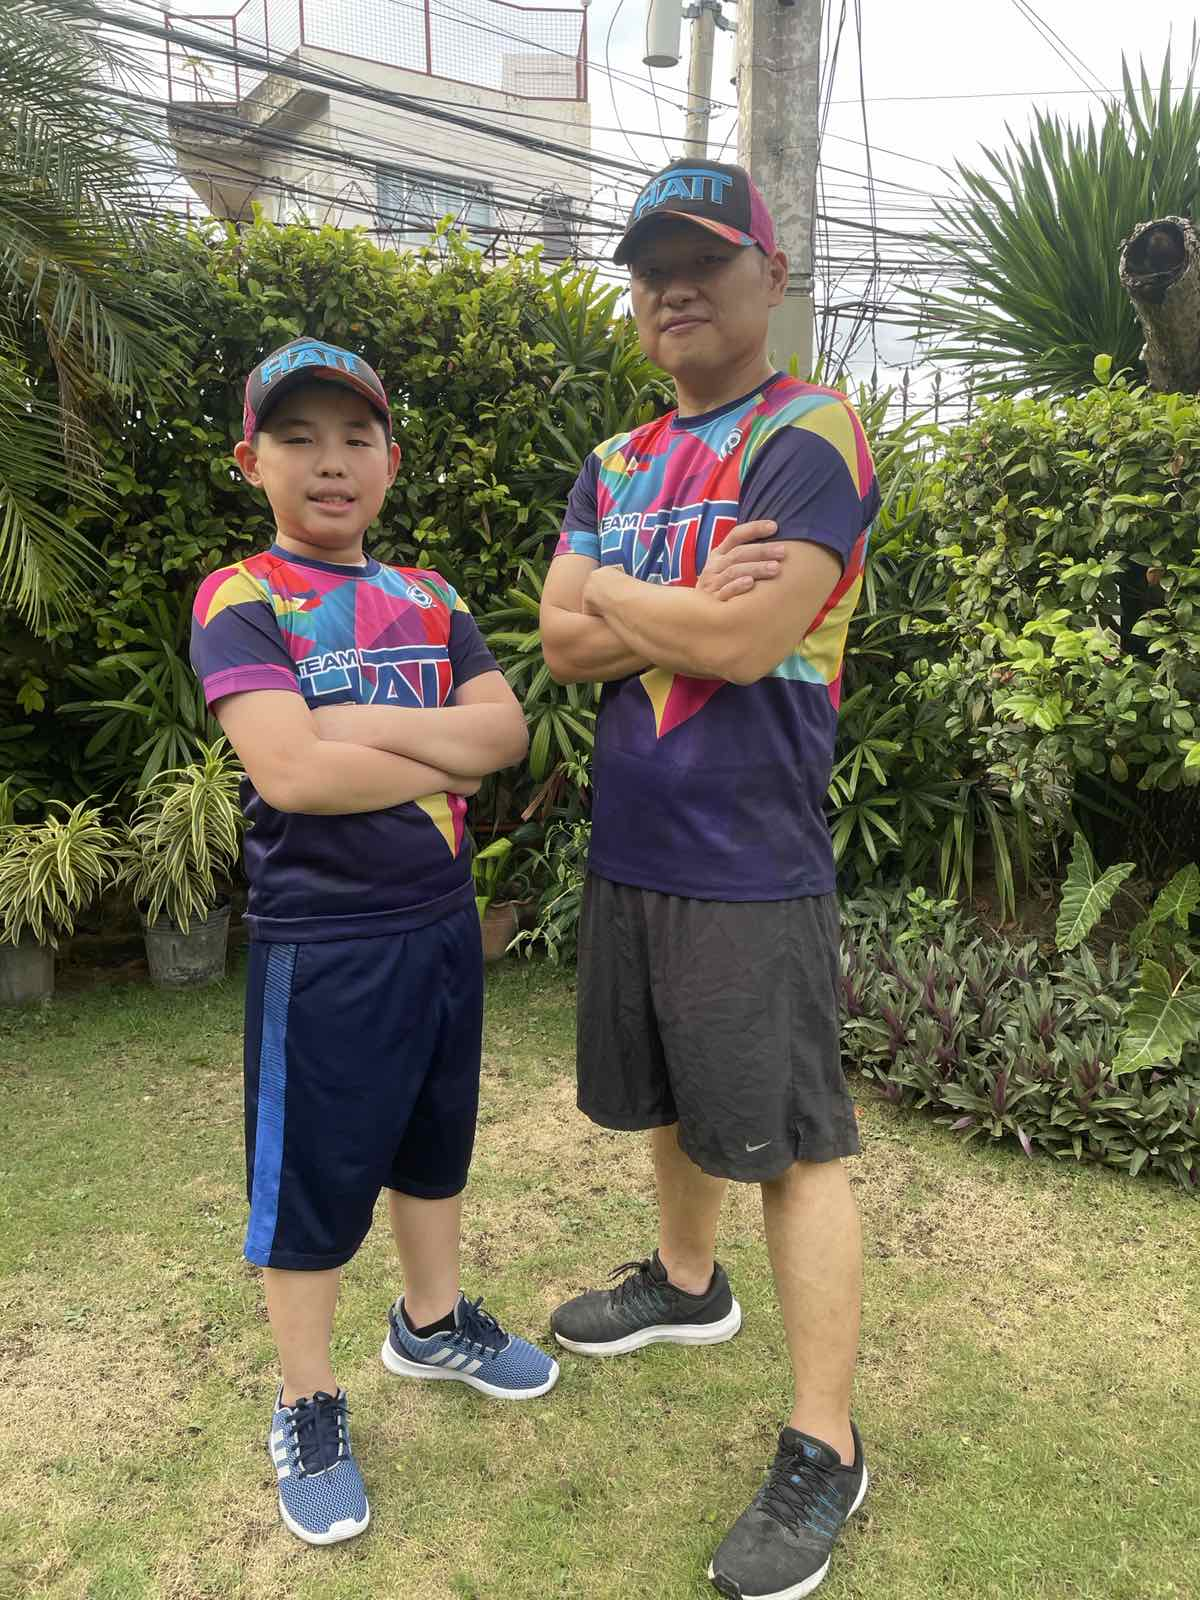 D:\ROBBY PERSONAL FILES 2013\RMA FILES\PAREF SPRINGDALE\PRESS RELEASES\PR 3\TITANS WINNERS PHOTOS\Father and Son Run - Ashton Sun (student) and Benedict Sun (dad).jpg